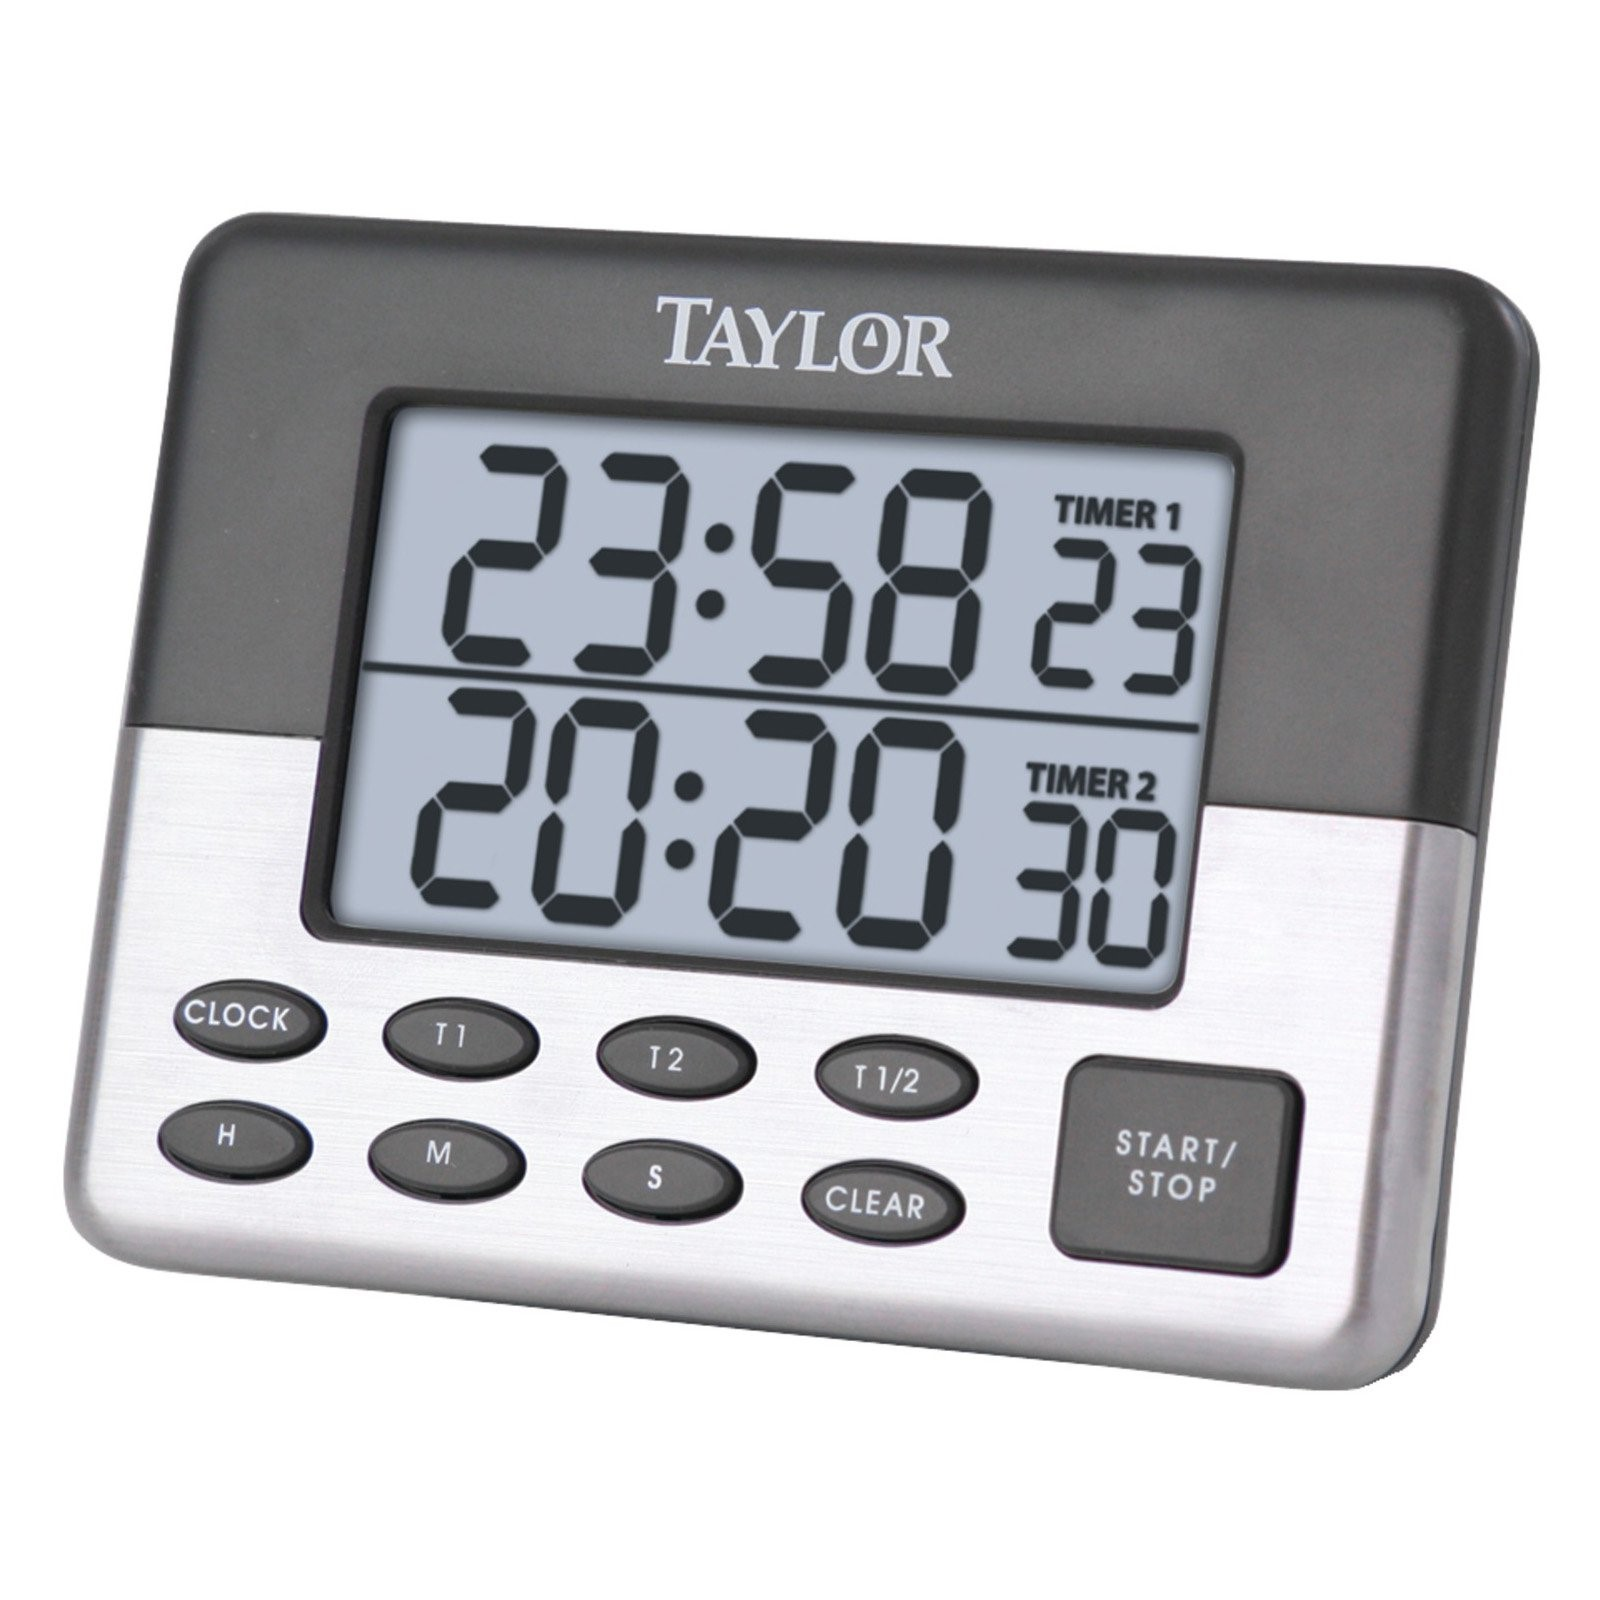 Charmant Taylor 5872 9 Dual Event Digital Timer